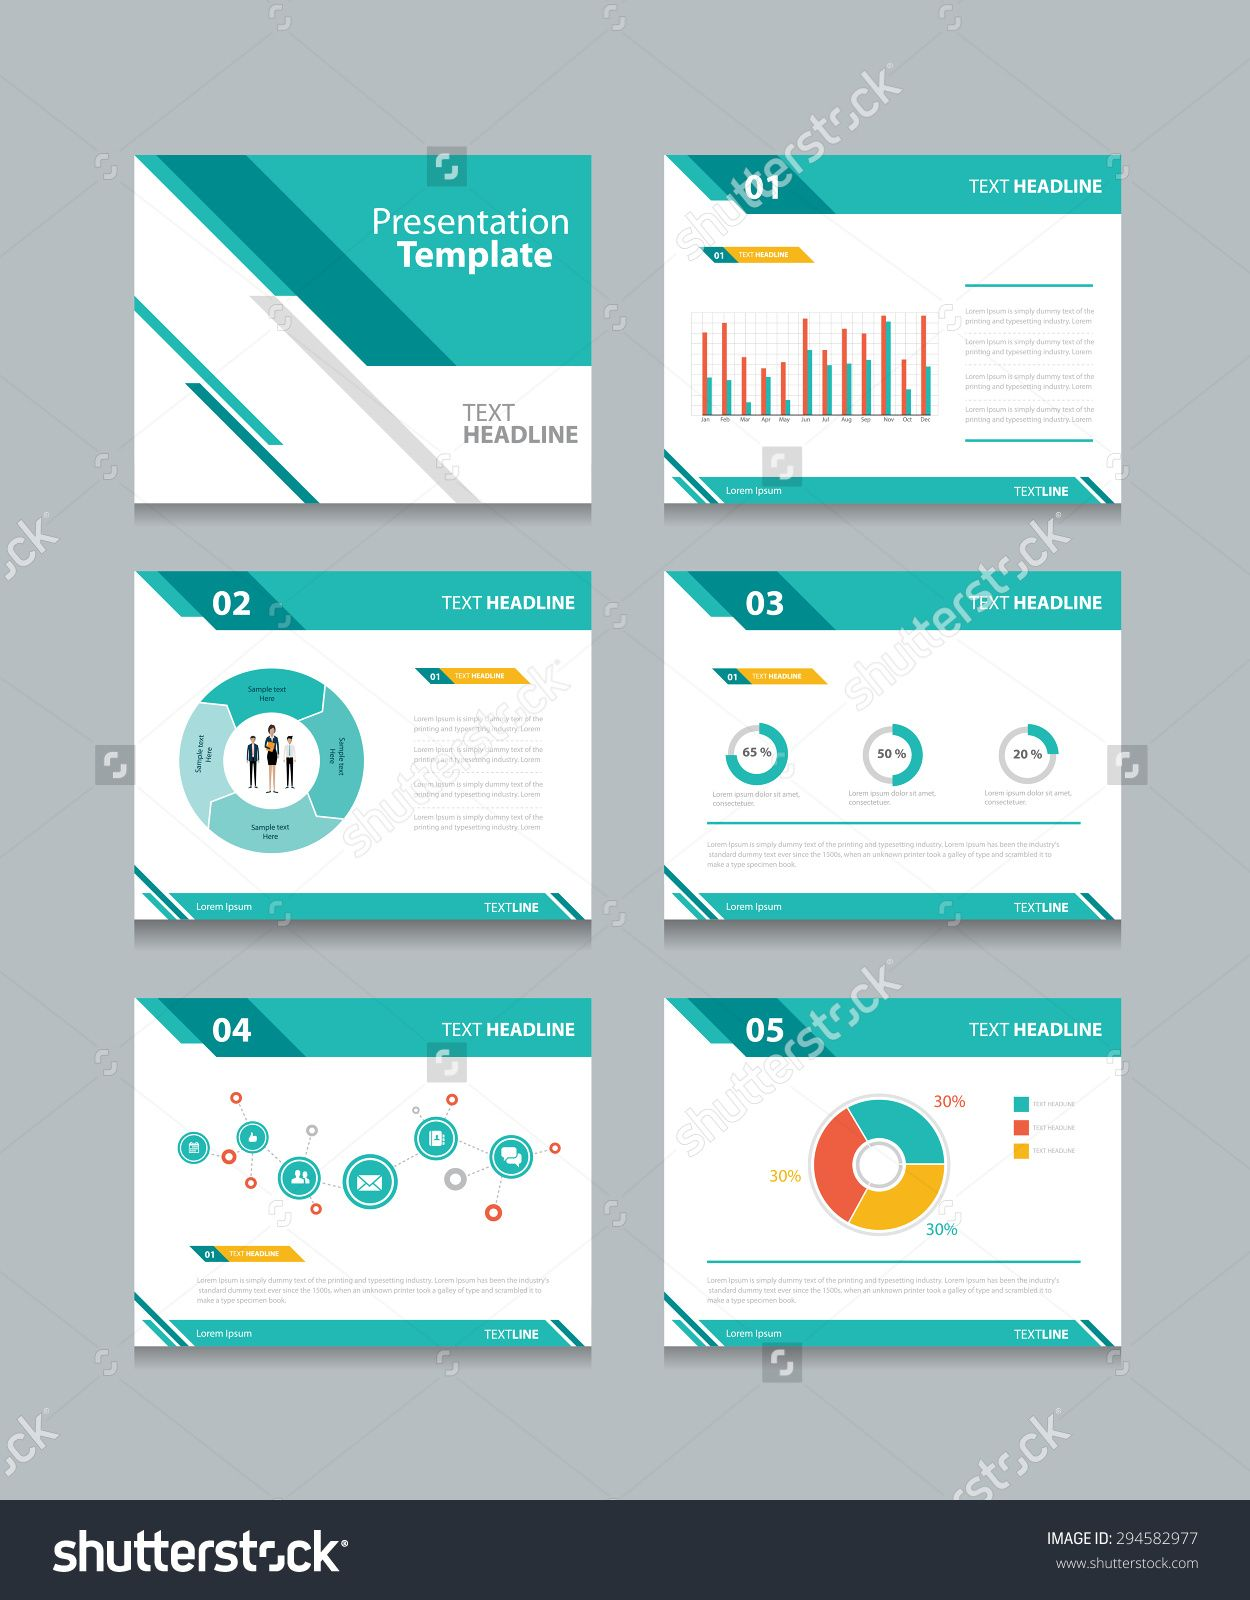 Business presentation template setpowerpoint template design business presentation template setpowerpoint template design backgrounds wajeb